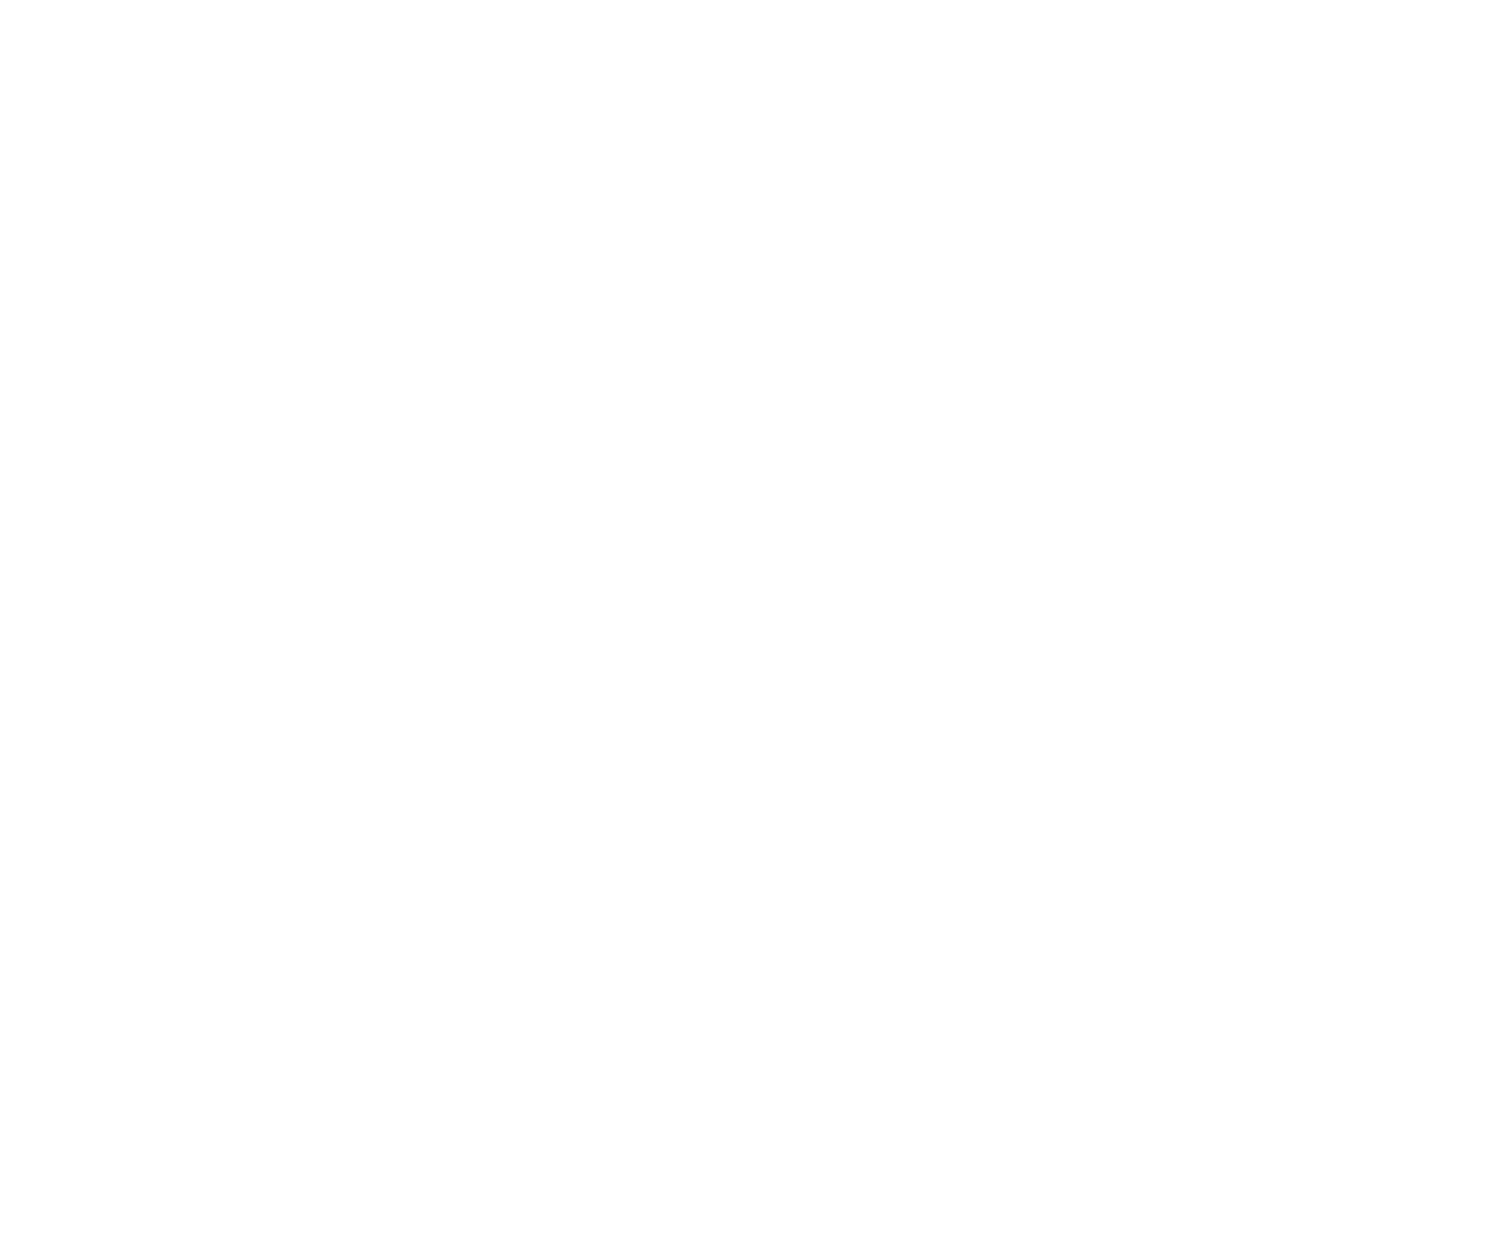 The Van Lifers